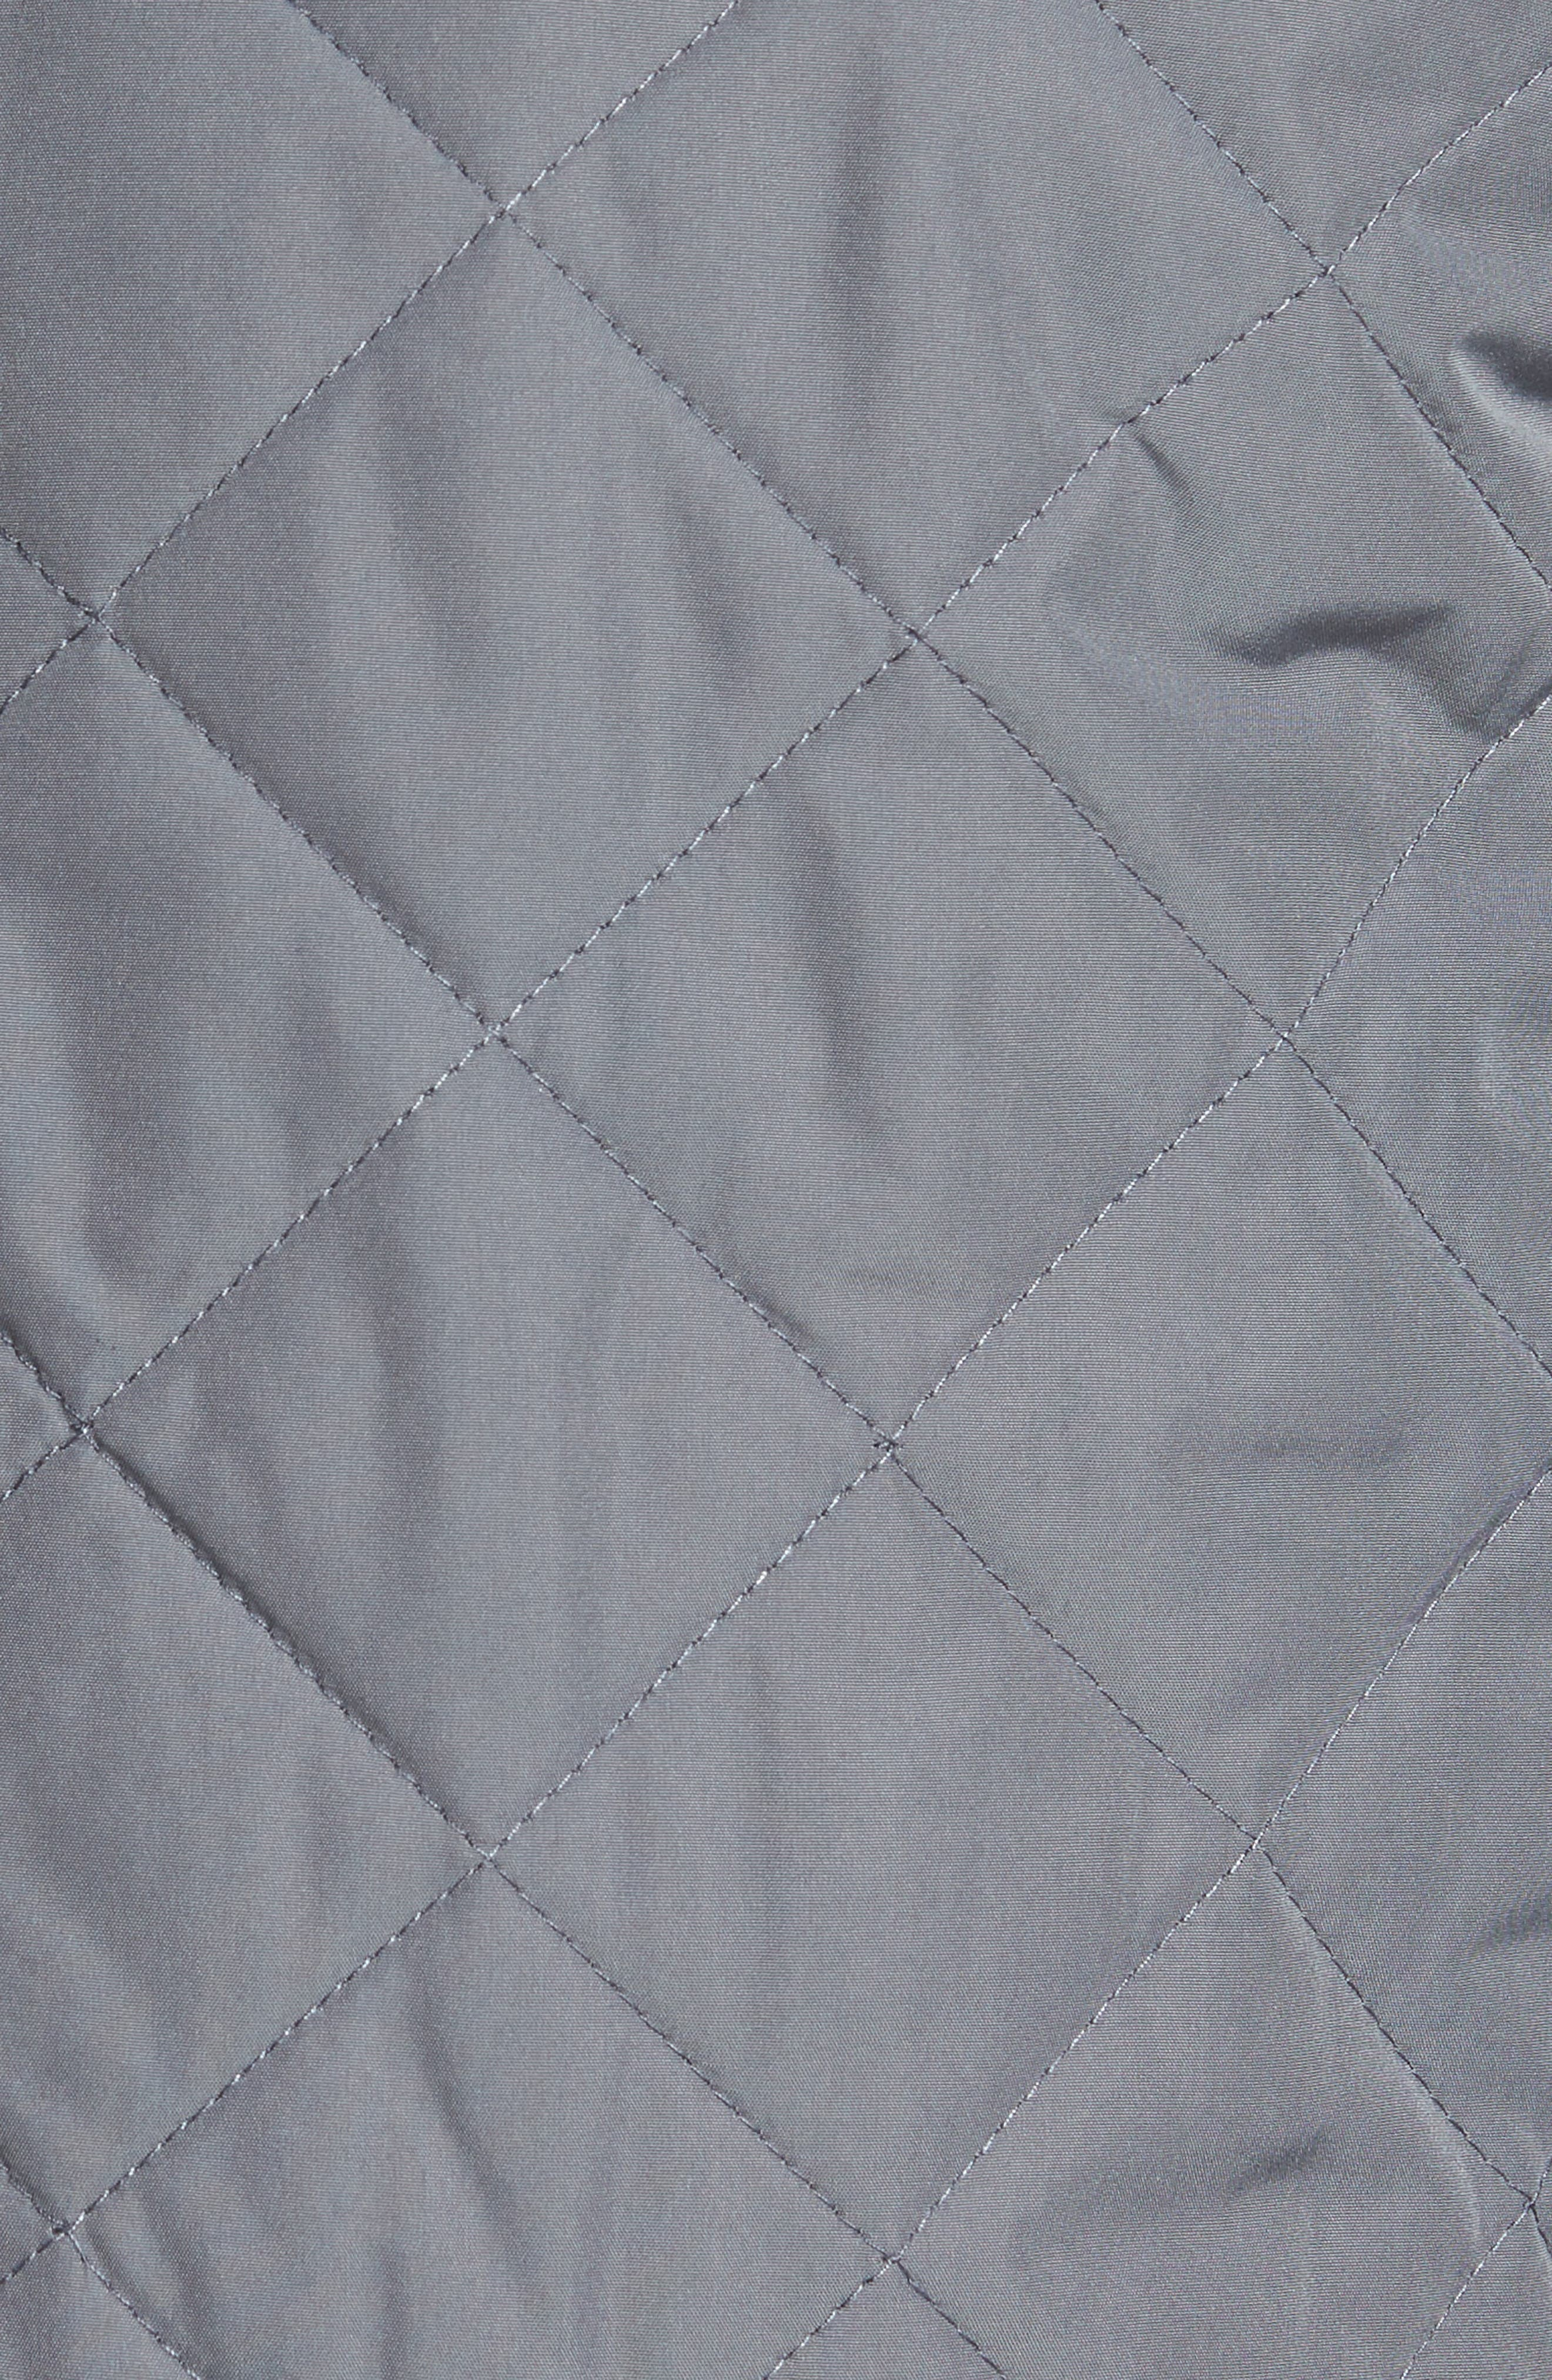 Distributor Quilted Bomber Jacket,                             Alternate thumbnail 5, color,                             Grey